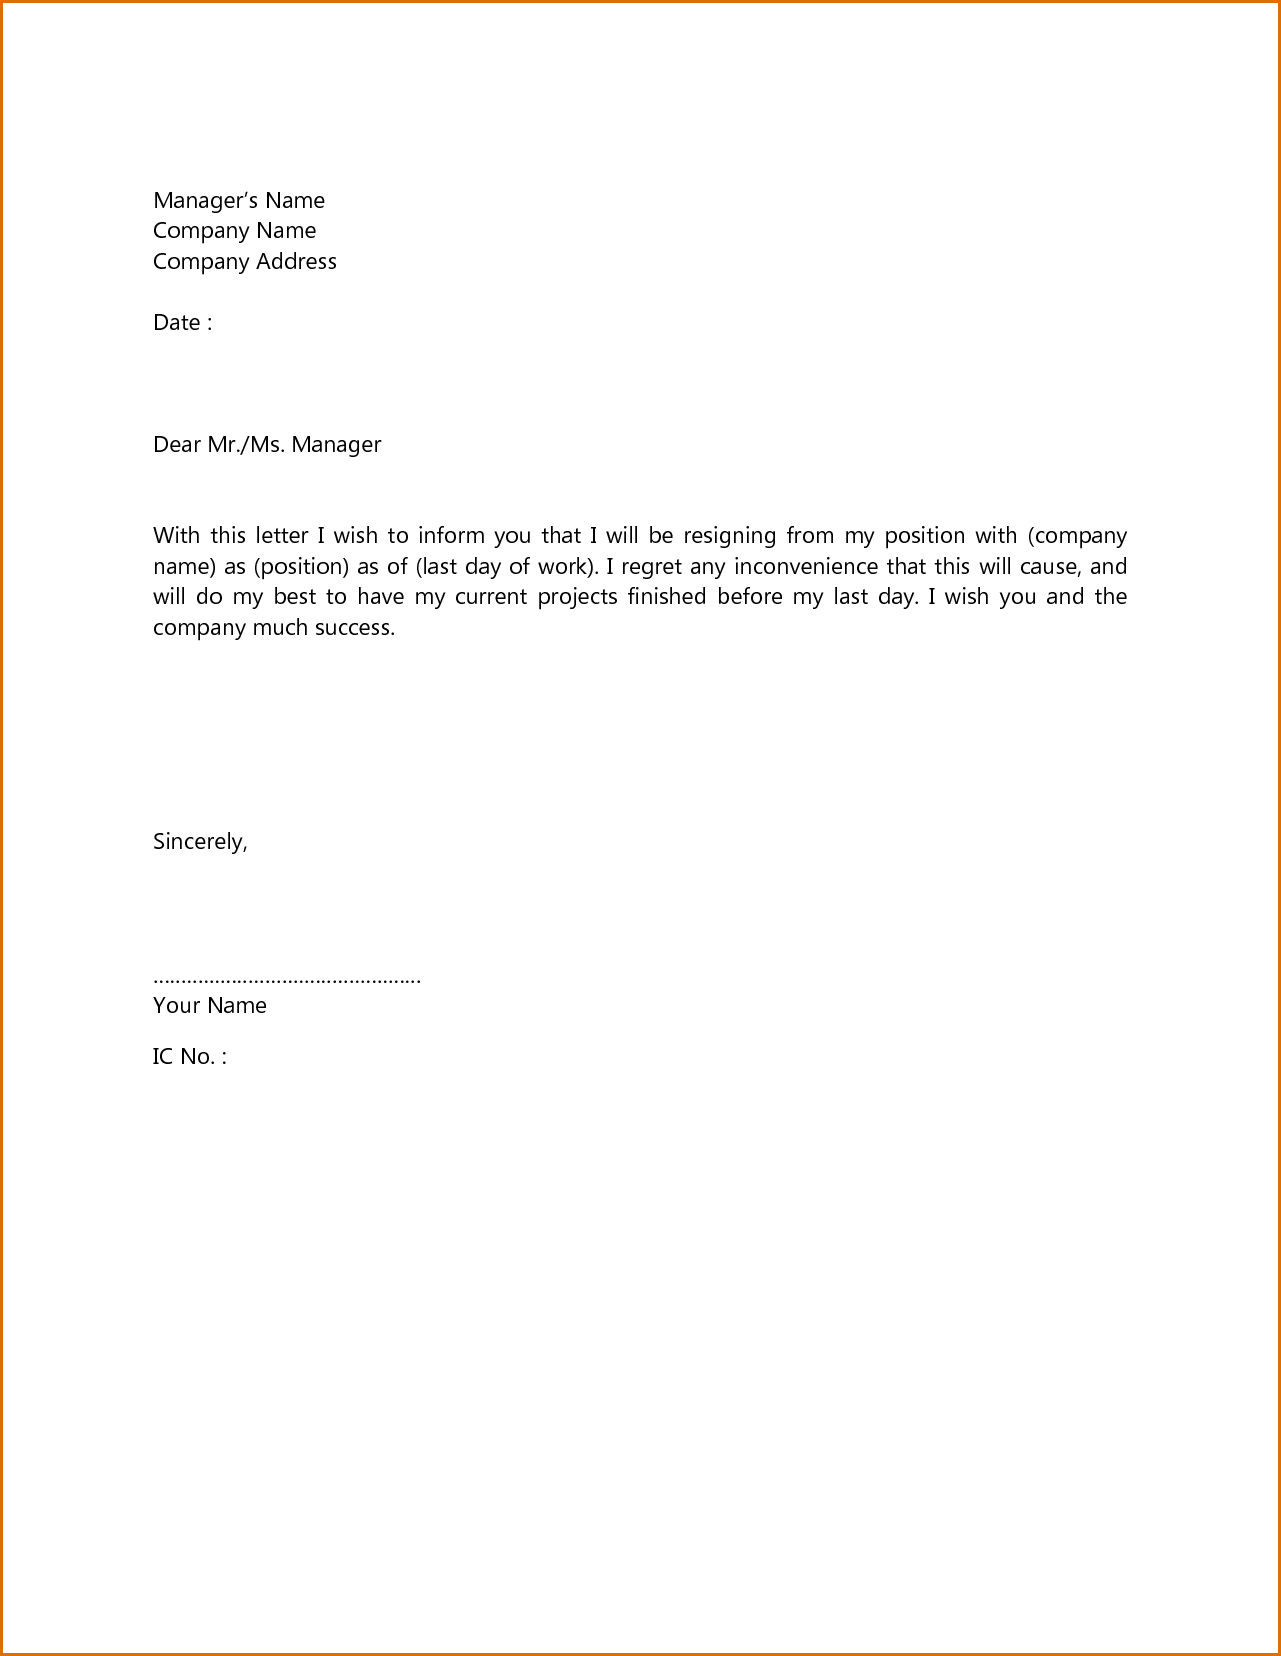 Termination Letter Sample Singapore Formal Resignation Cover Samples